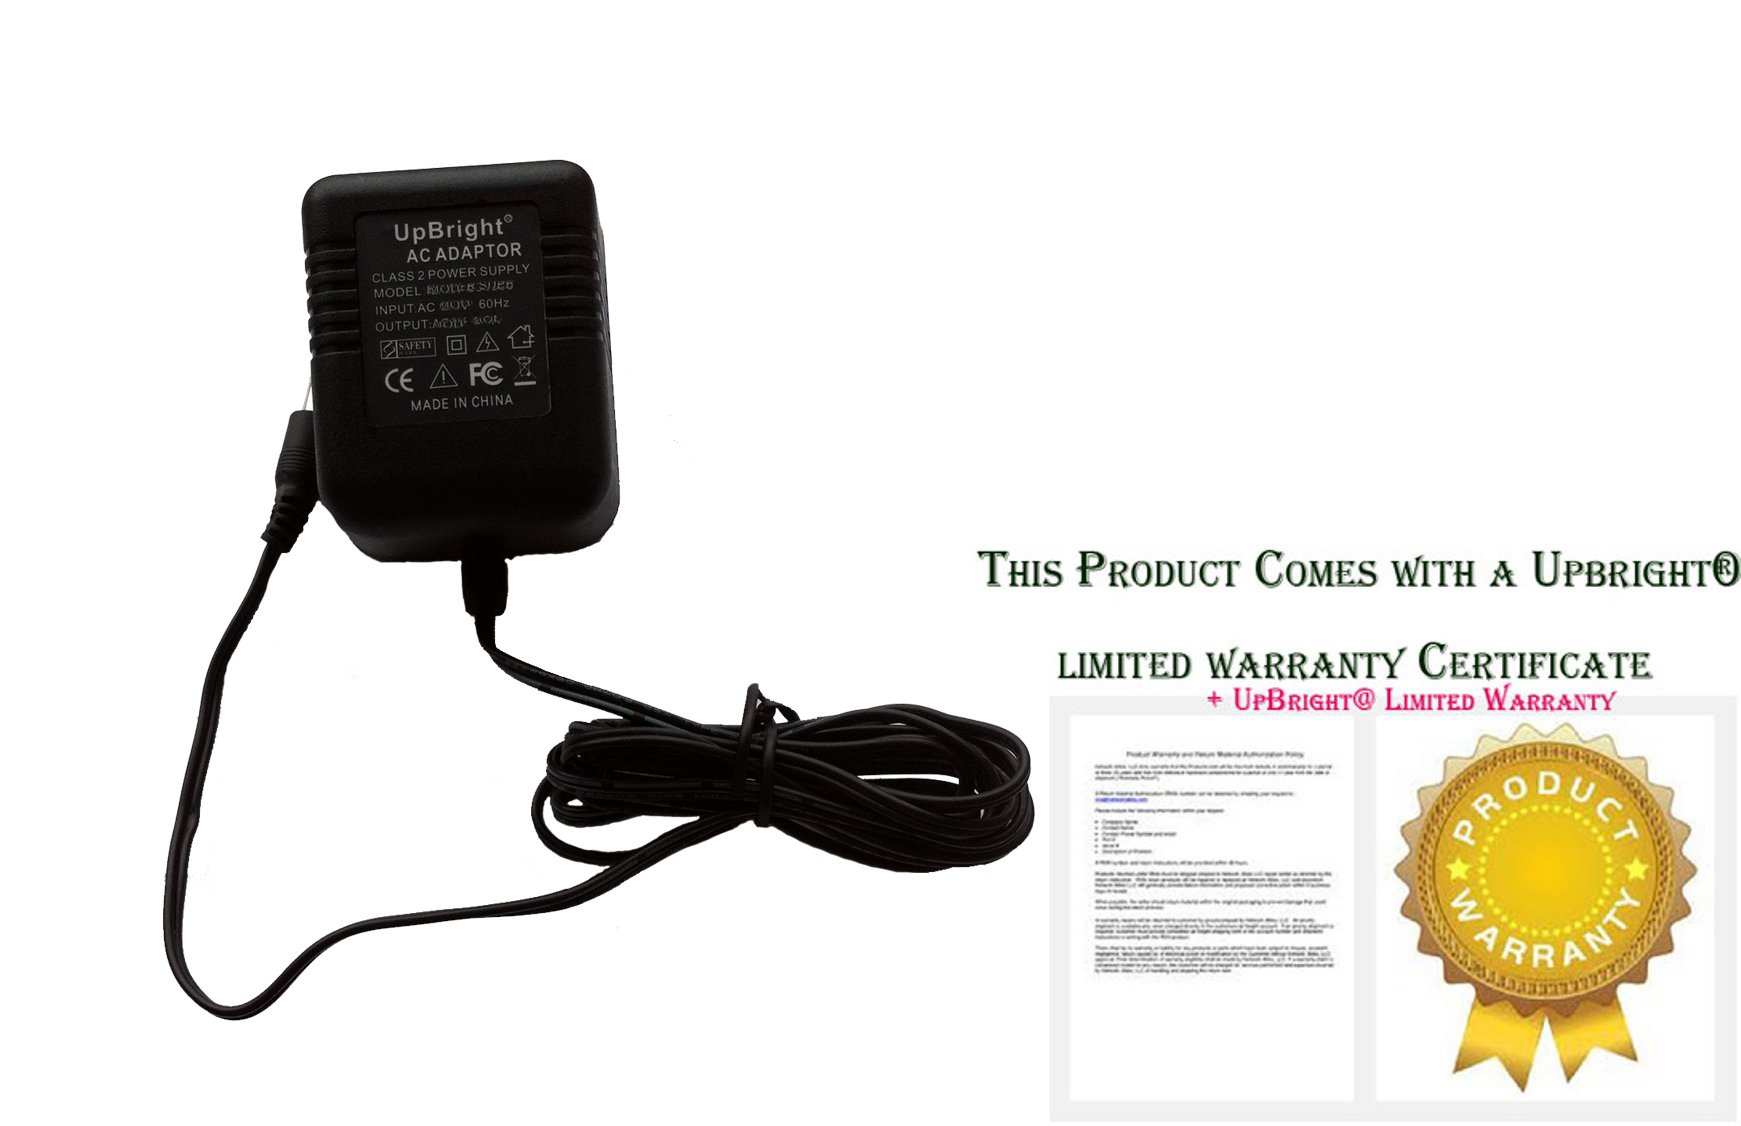 UpBright NEW AC / AC Adapter For AT&T 993 2-Line Speakerphone Business Telephone Power Supply Cord Cable Charger Mains PSU